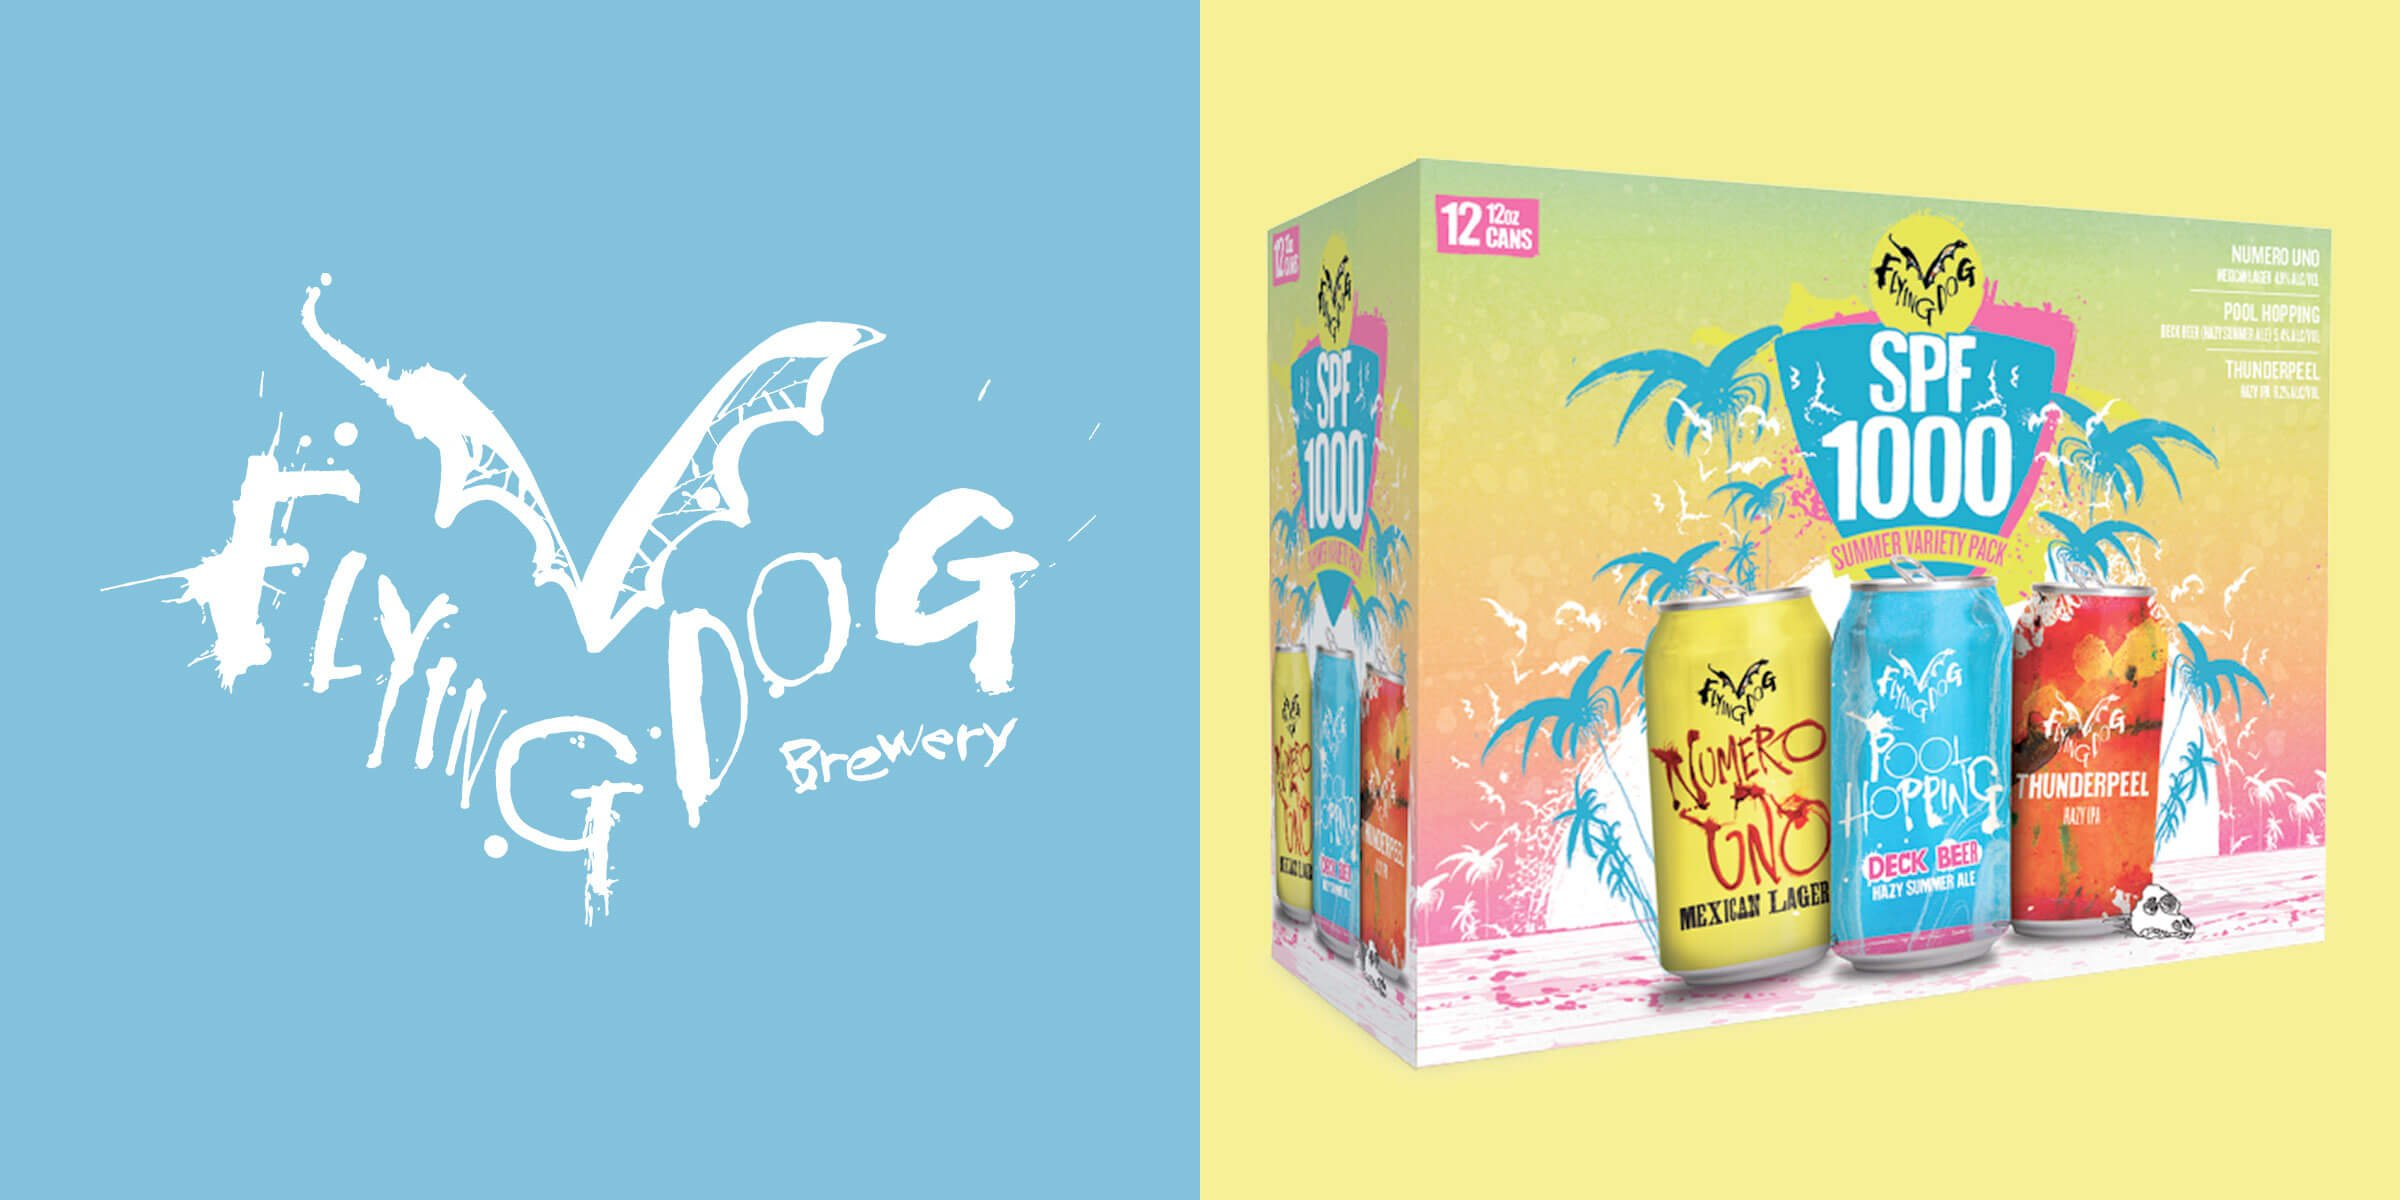 Flying Dog Brewery has released a new variety pack for the summer, SPF 1000, featuring Thunderpeel, Numero Uno, and their new summer seasonal, Pool Hopping.